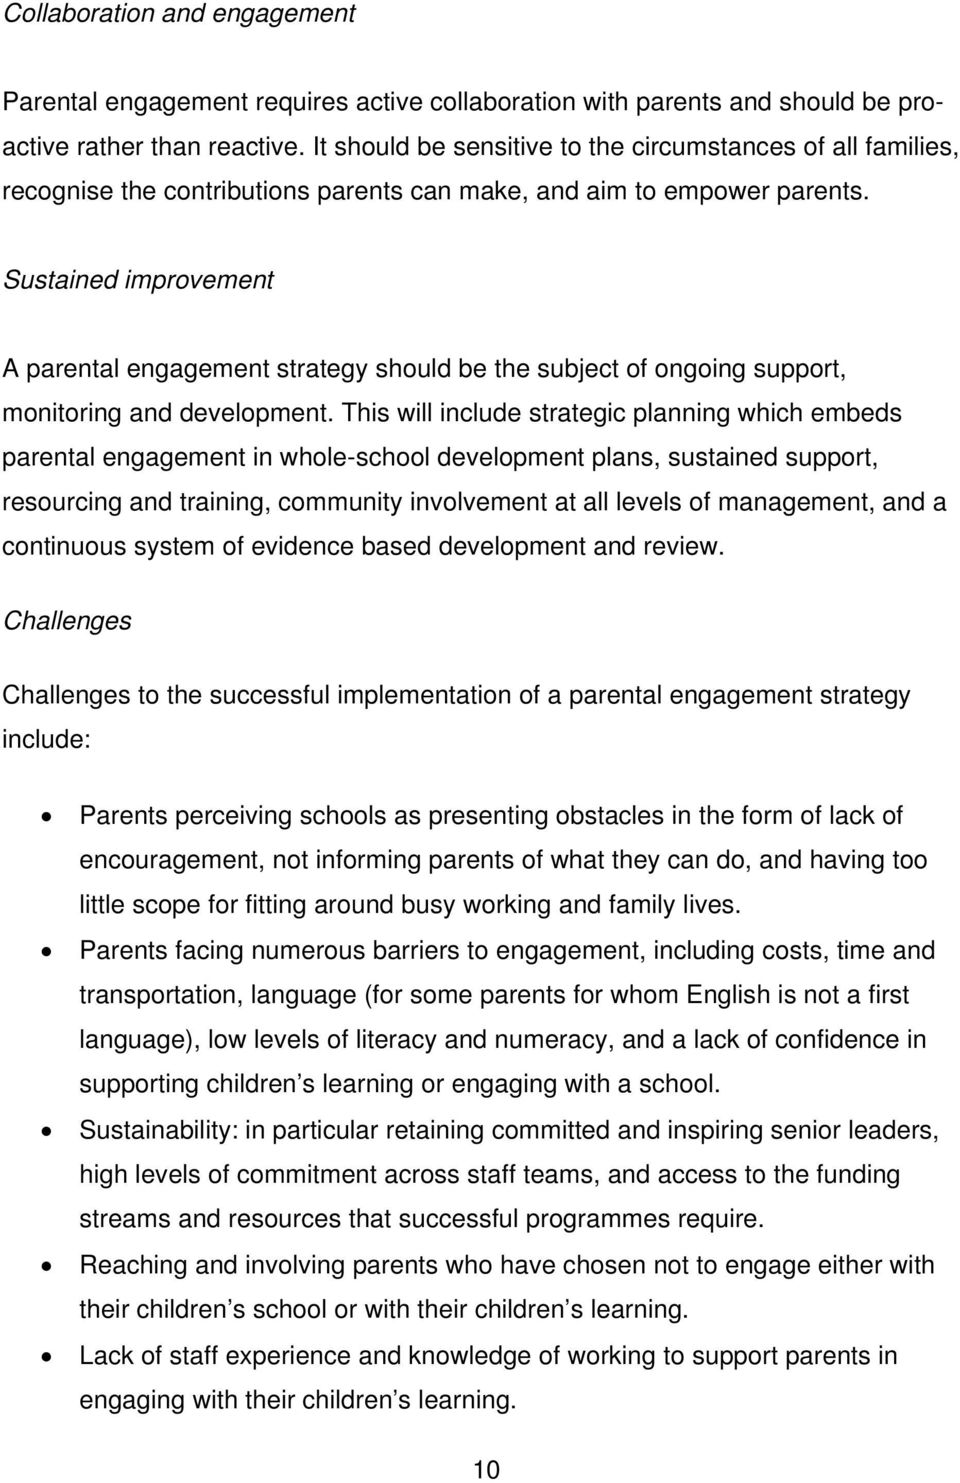 Sustained improvement A parental engagement strategy should be the subject of ongoing support, monitoring and development.